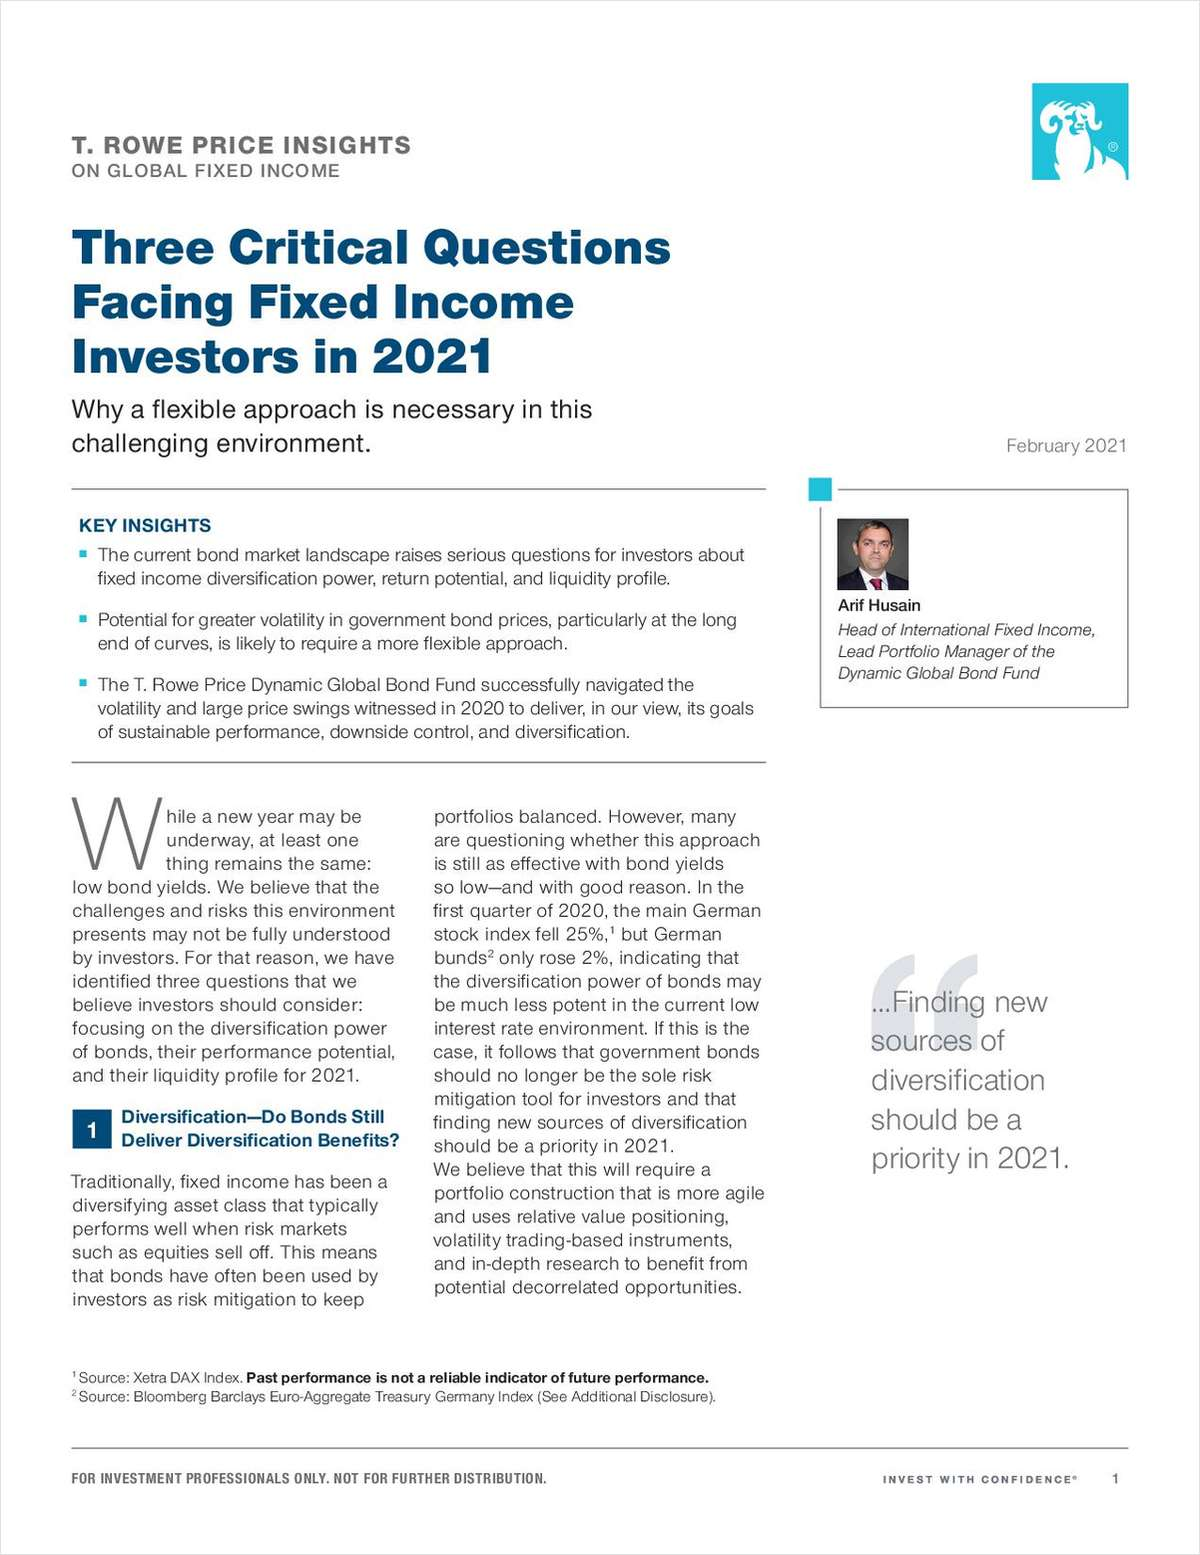 Three Critical Questions Facing Fixed Income Investors in 2021